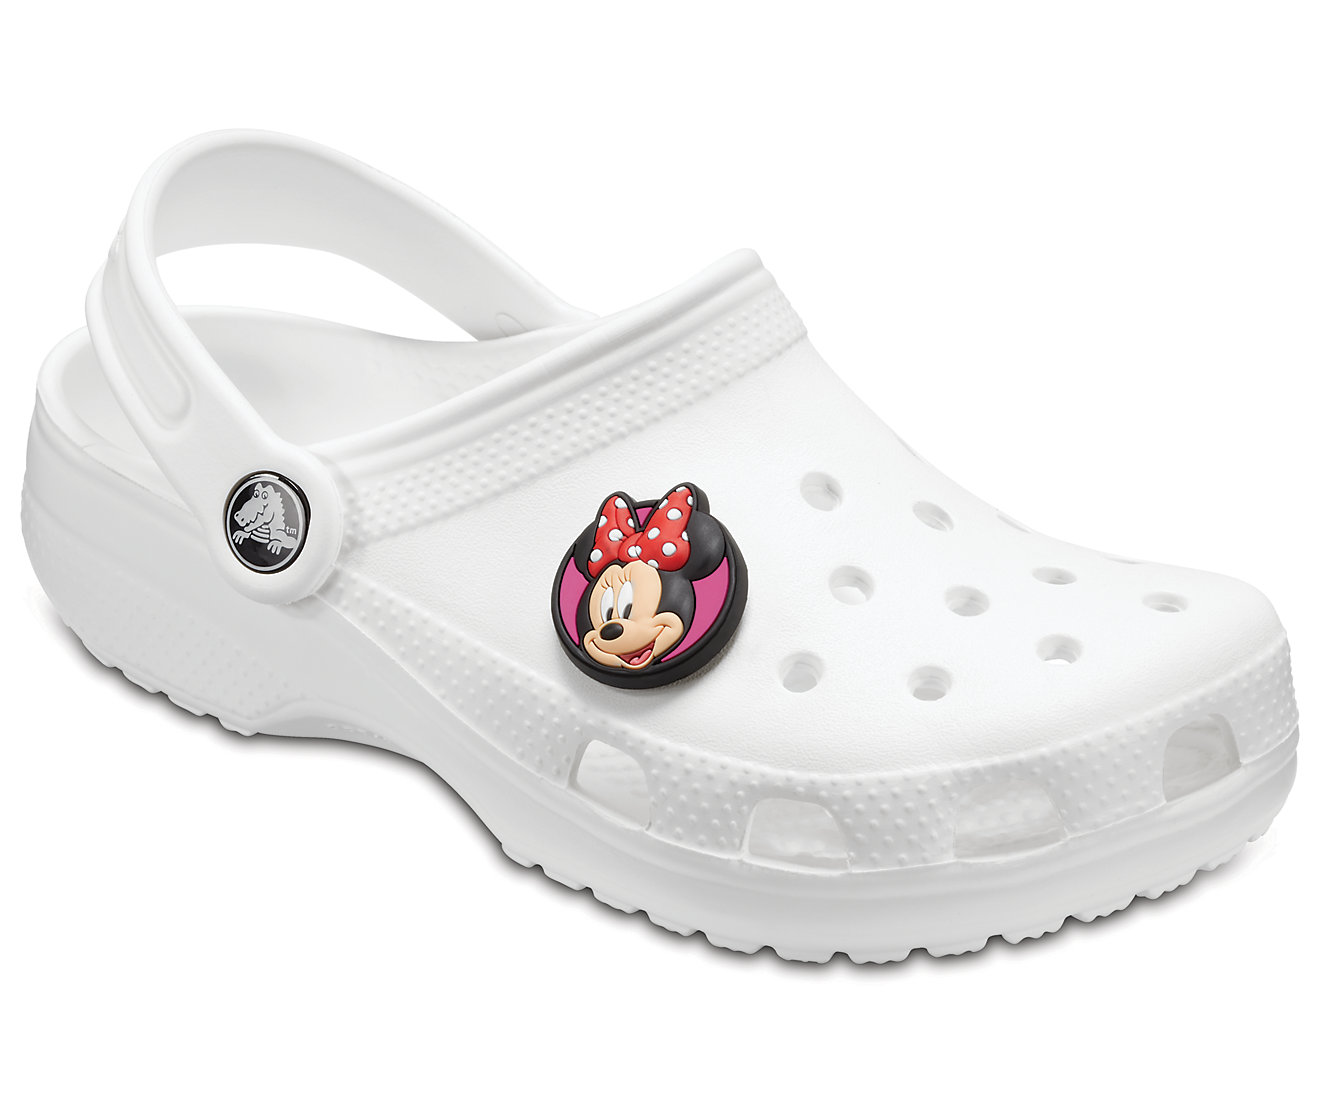 Crocs ozdoba do boty Jibbitz Minnie Mouse